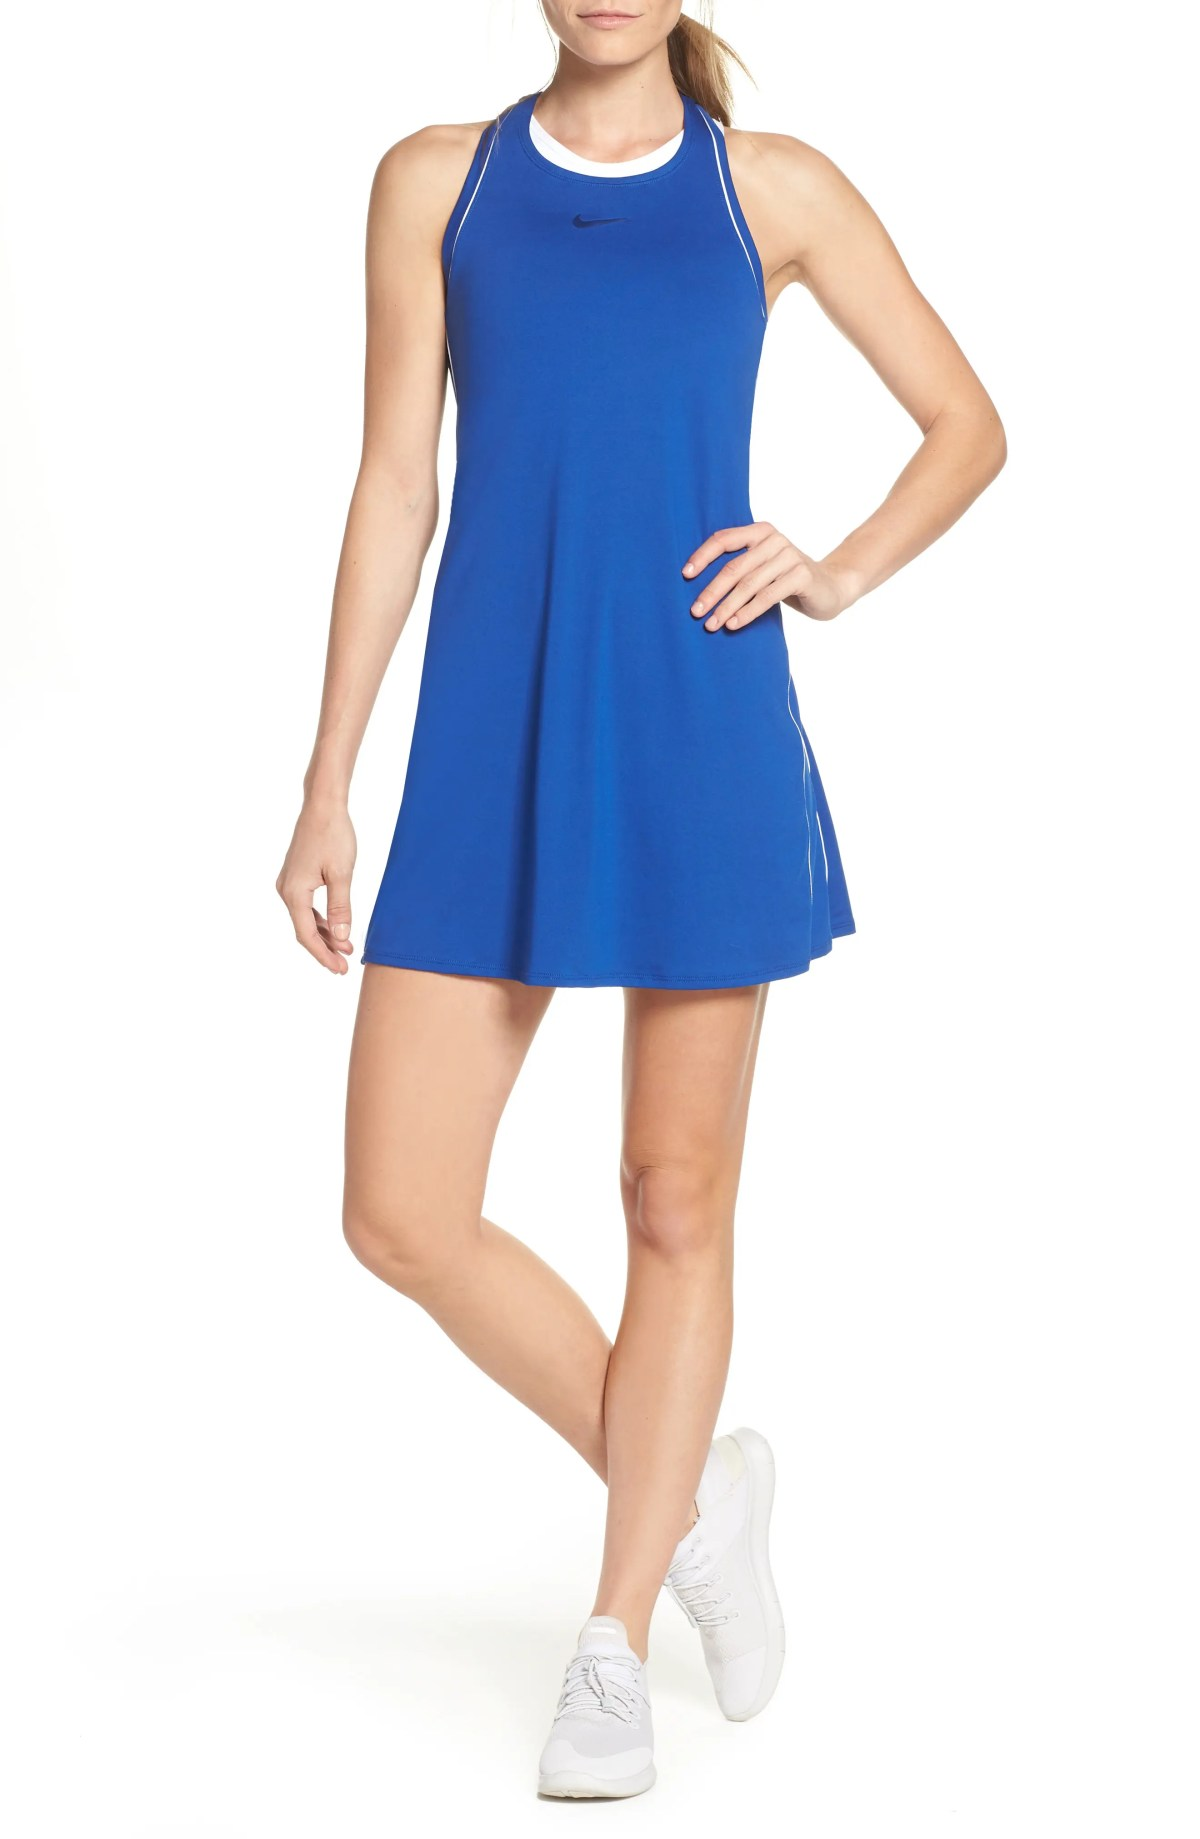 Court Dry Tennis Dress, Main, color, INDIGO/ WHITE/ WHITE